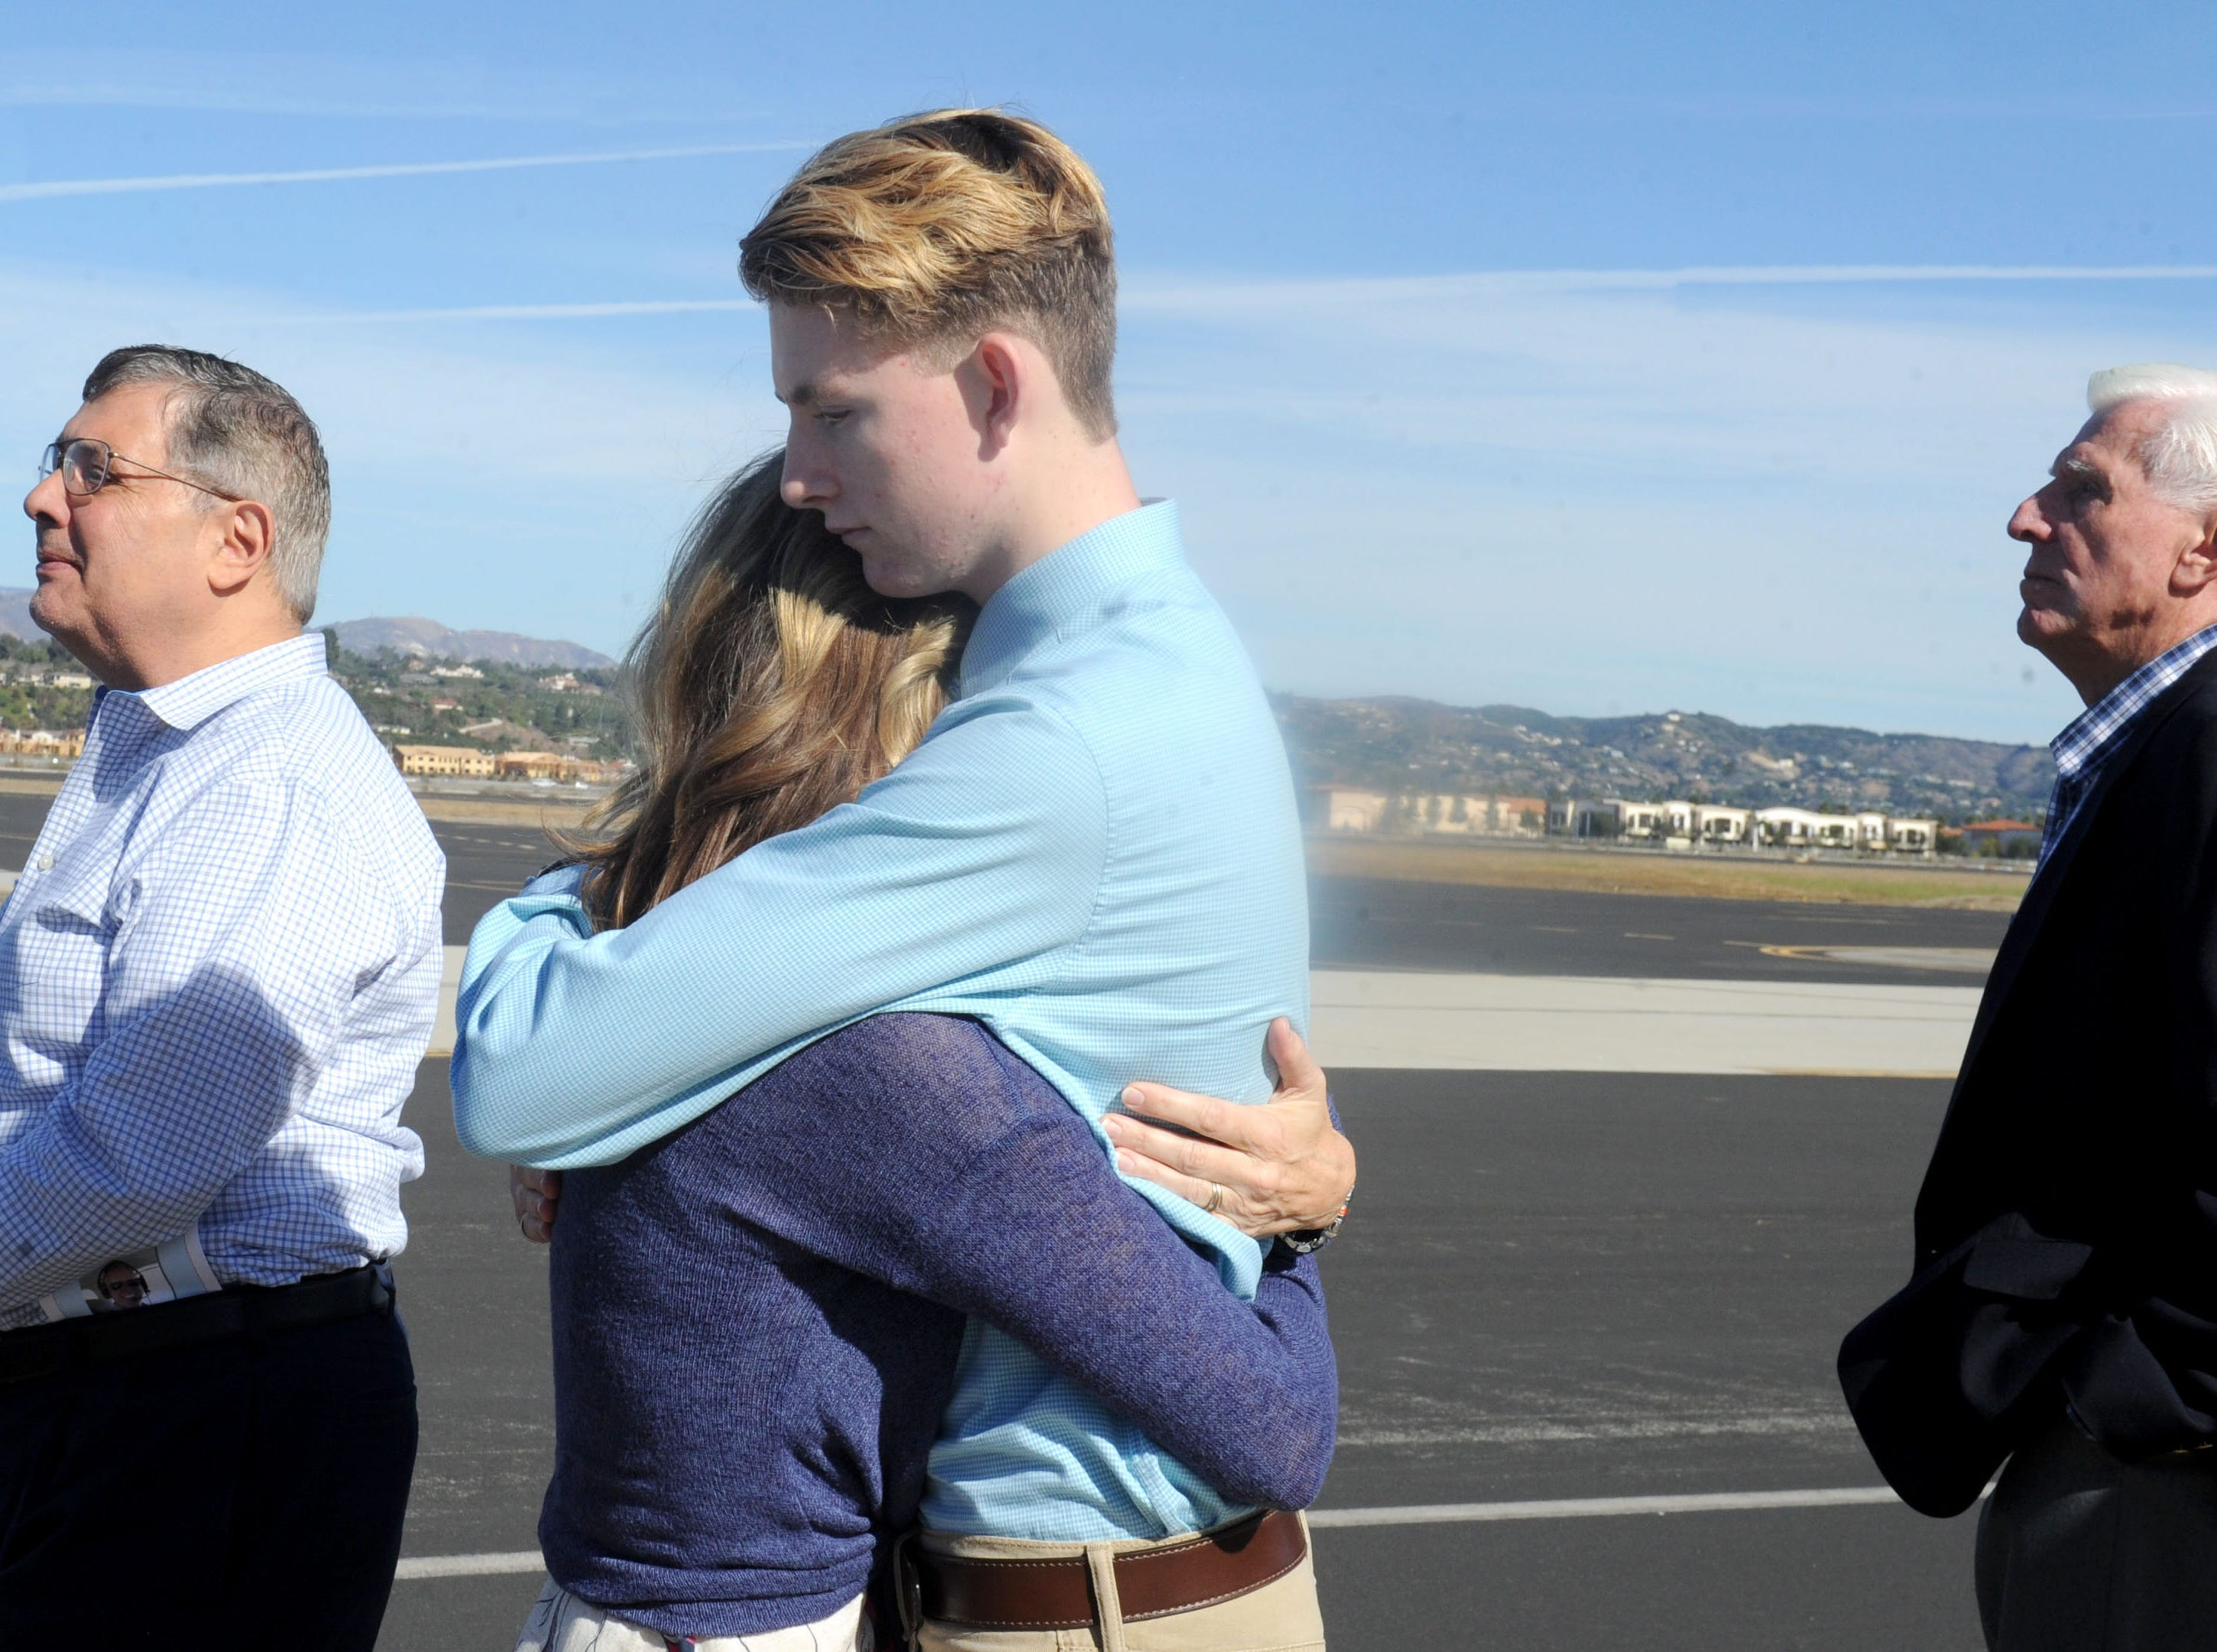 JT McNamee hugs his mother, Ann McNamee, at a memorial service for his father, Todd McNamee, at the Camarillo Airport.